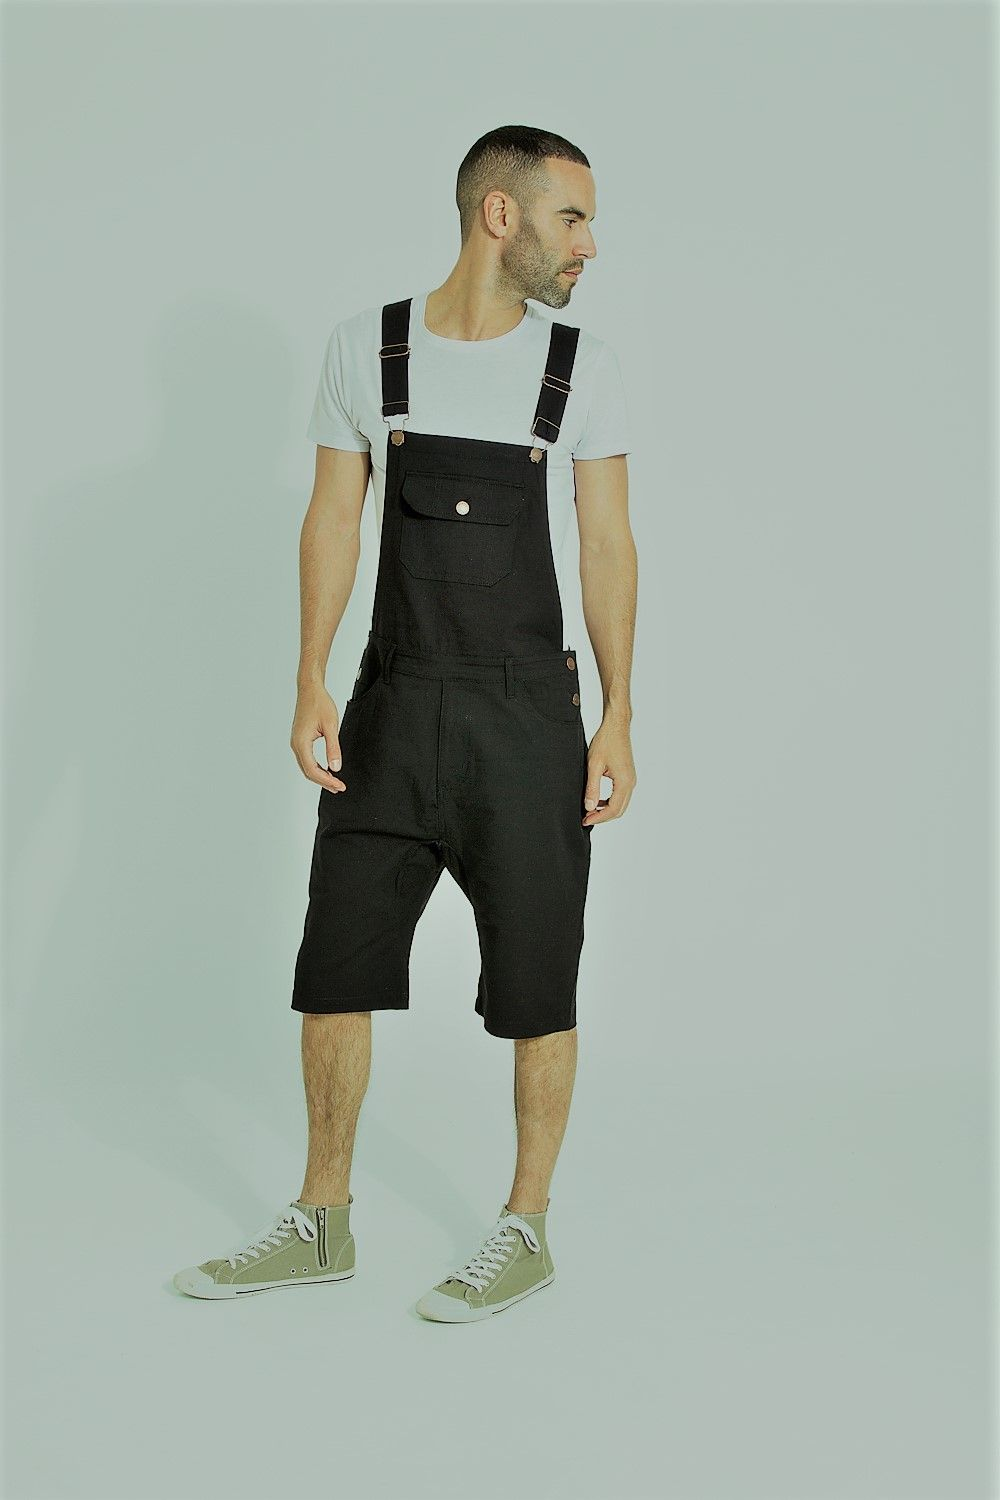 c4d90097 Versatility is the name of the game - #Uskees Jesse black cotton  bib-overall shorts are an awesome choice if you want to be equipped for fun.